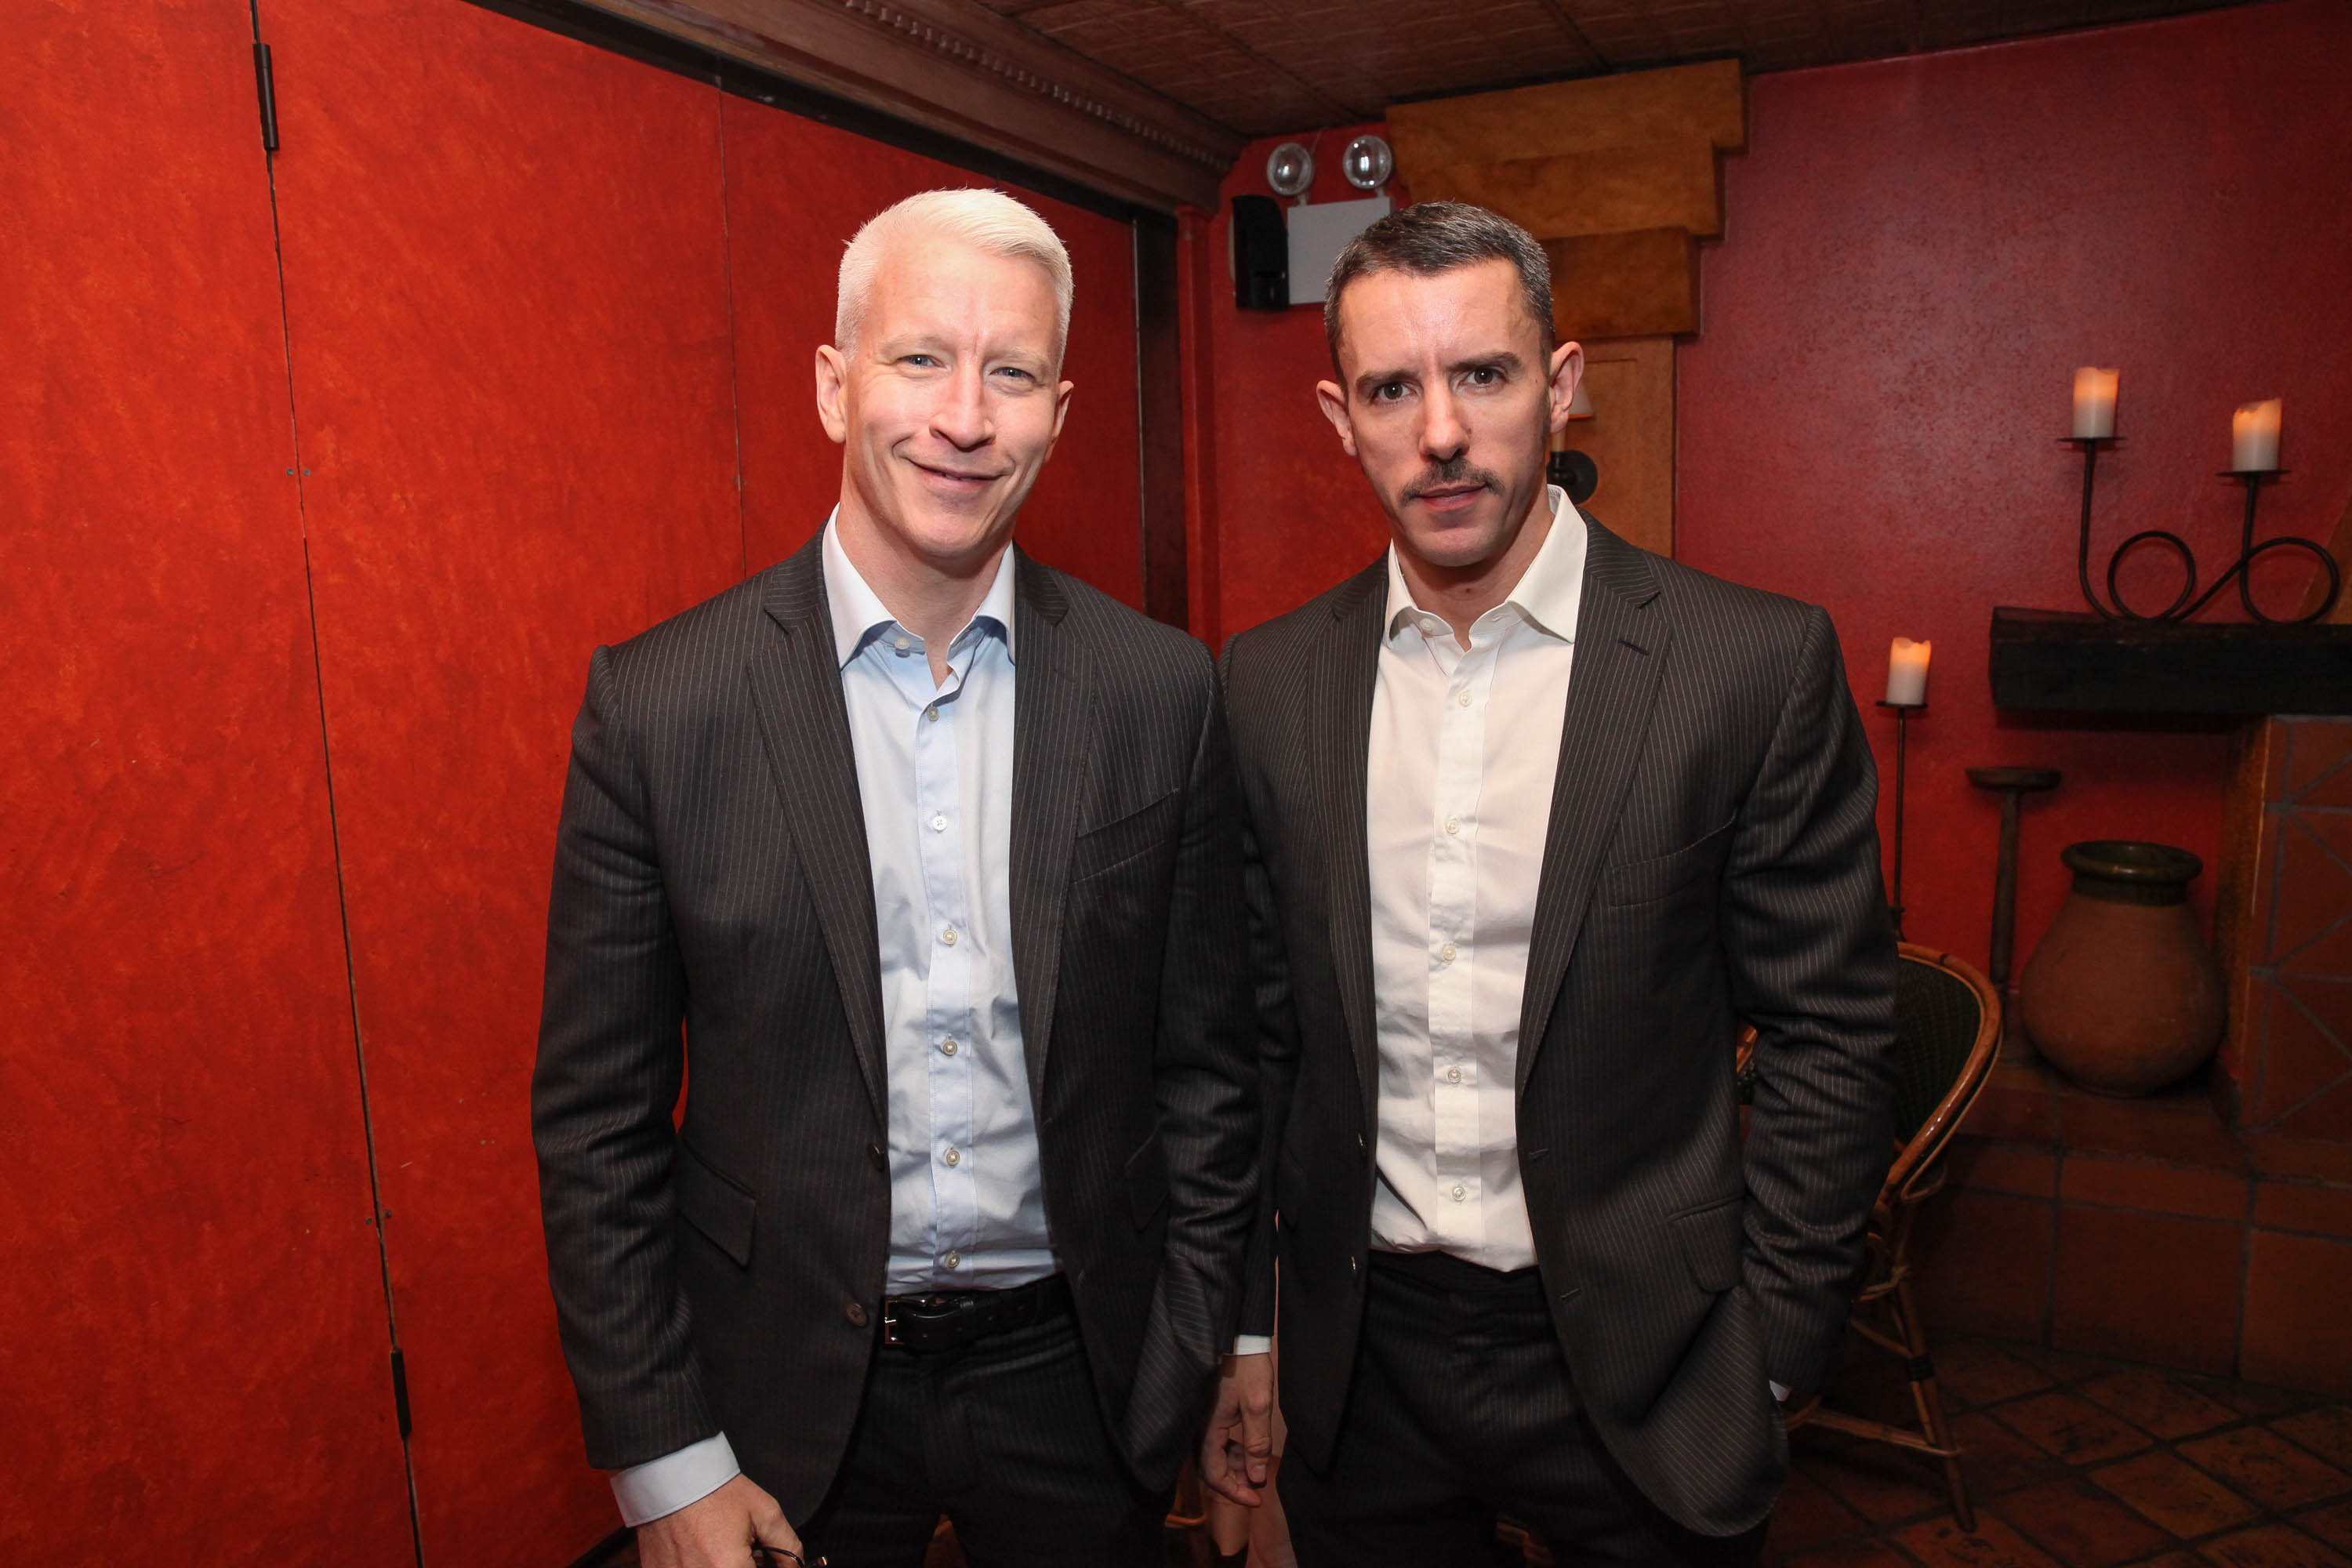 Anderson Cooper and Benjamin Maisani attend Kathy Griffin's Carnegie Hall Performance official after party on November 8, 2013, in New York City. | Source: Getty Images.